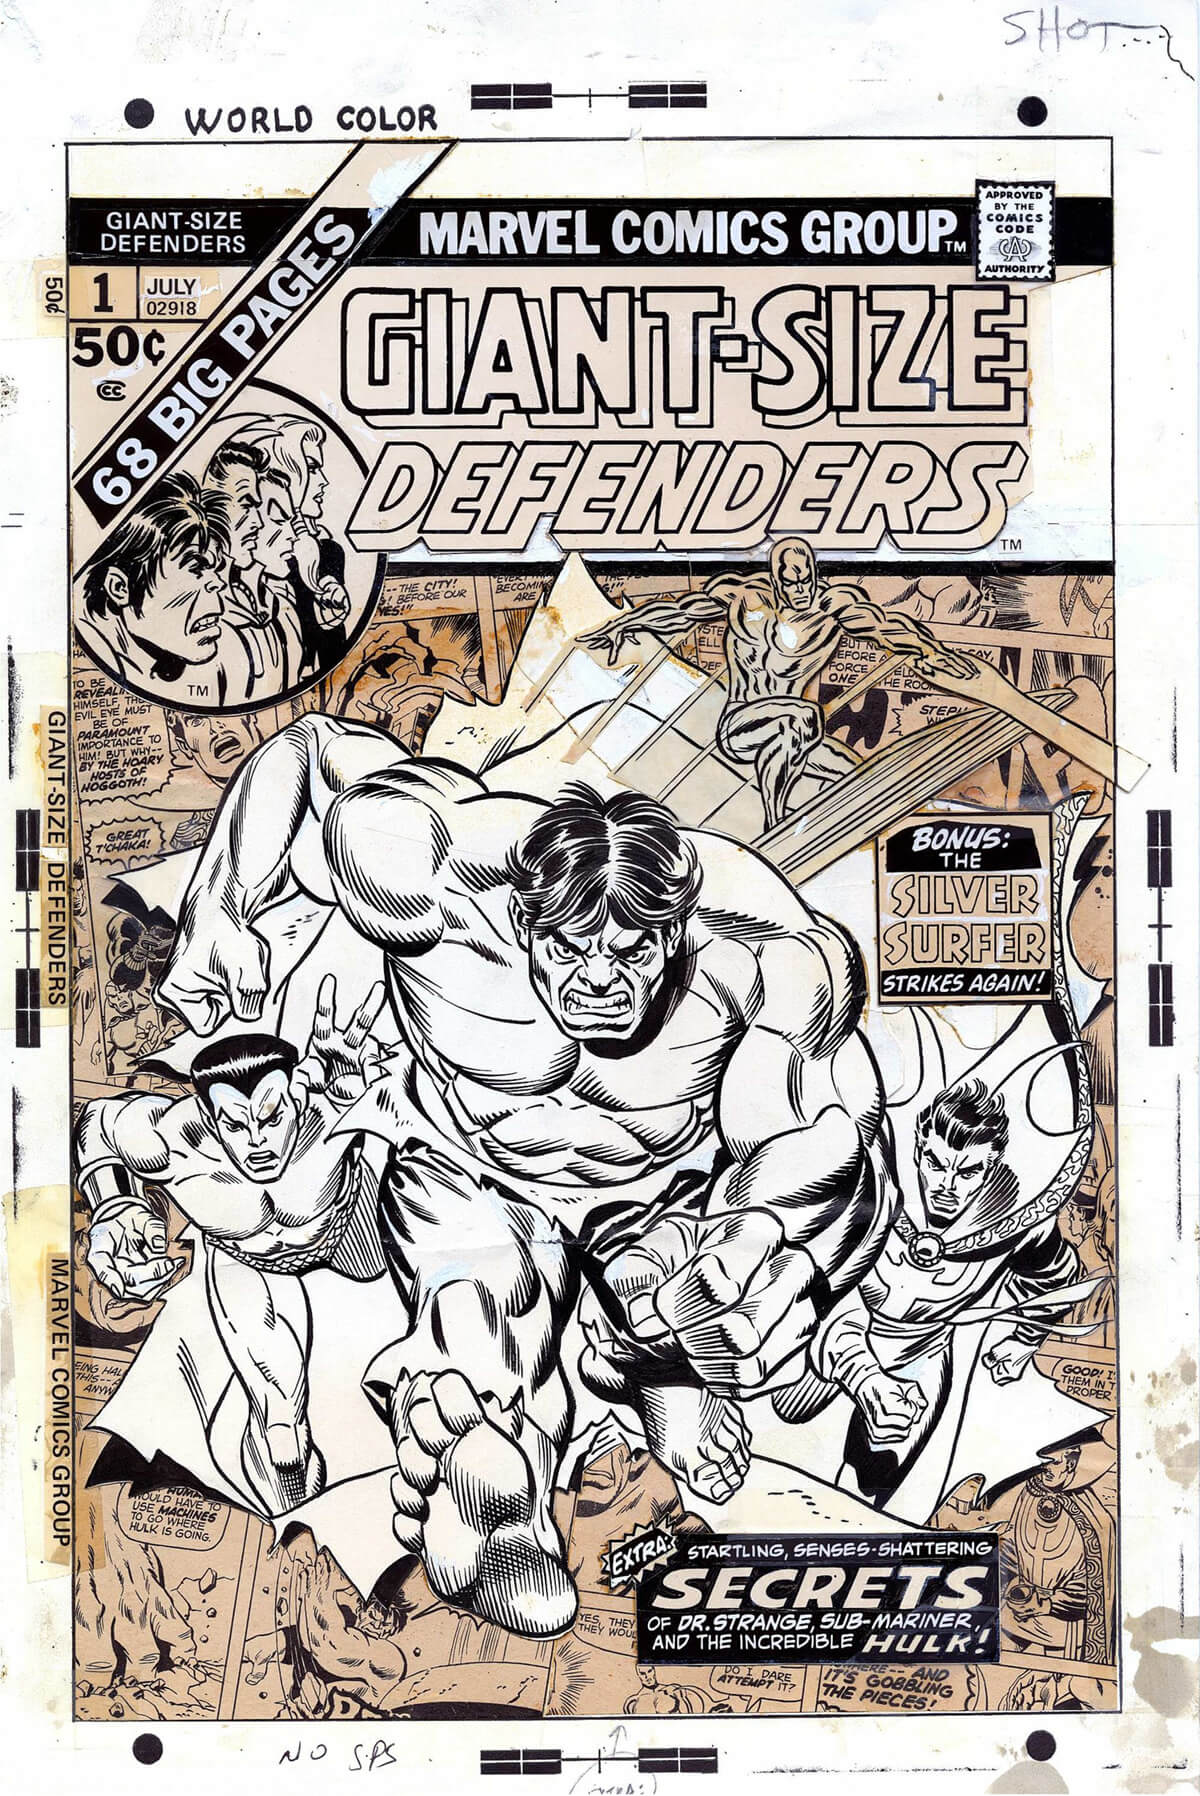 Giant-Size Defenders 1 by Gil Kane and Frank Giacoia